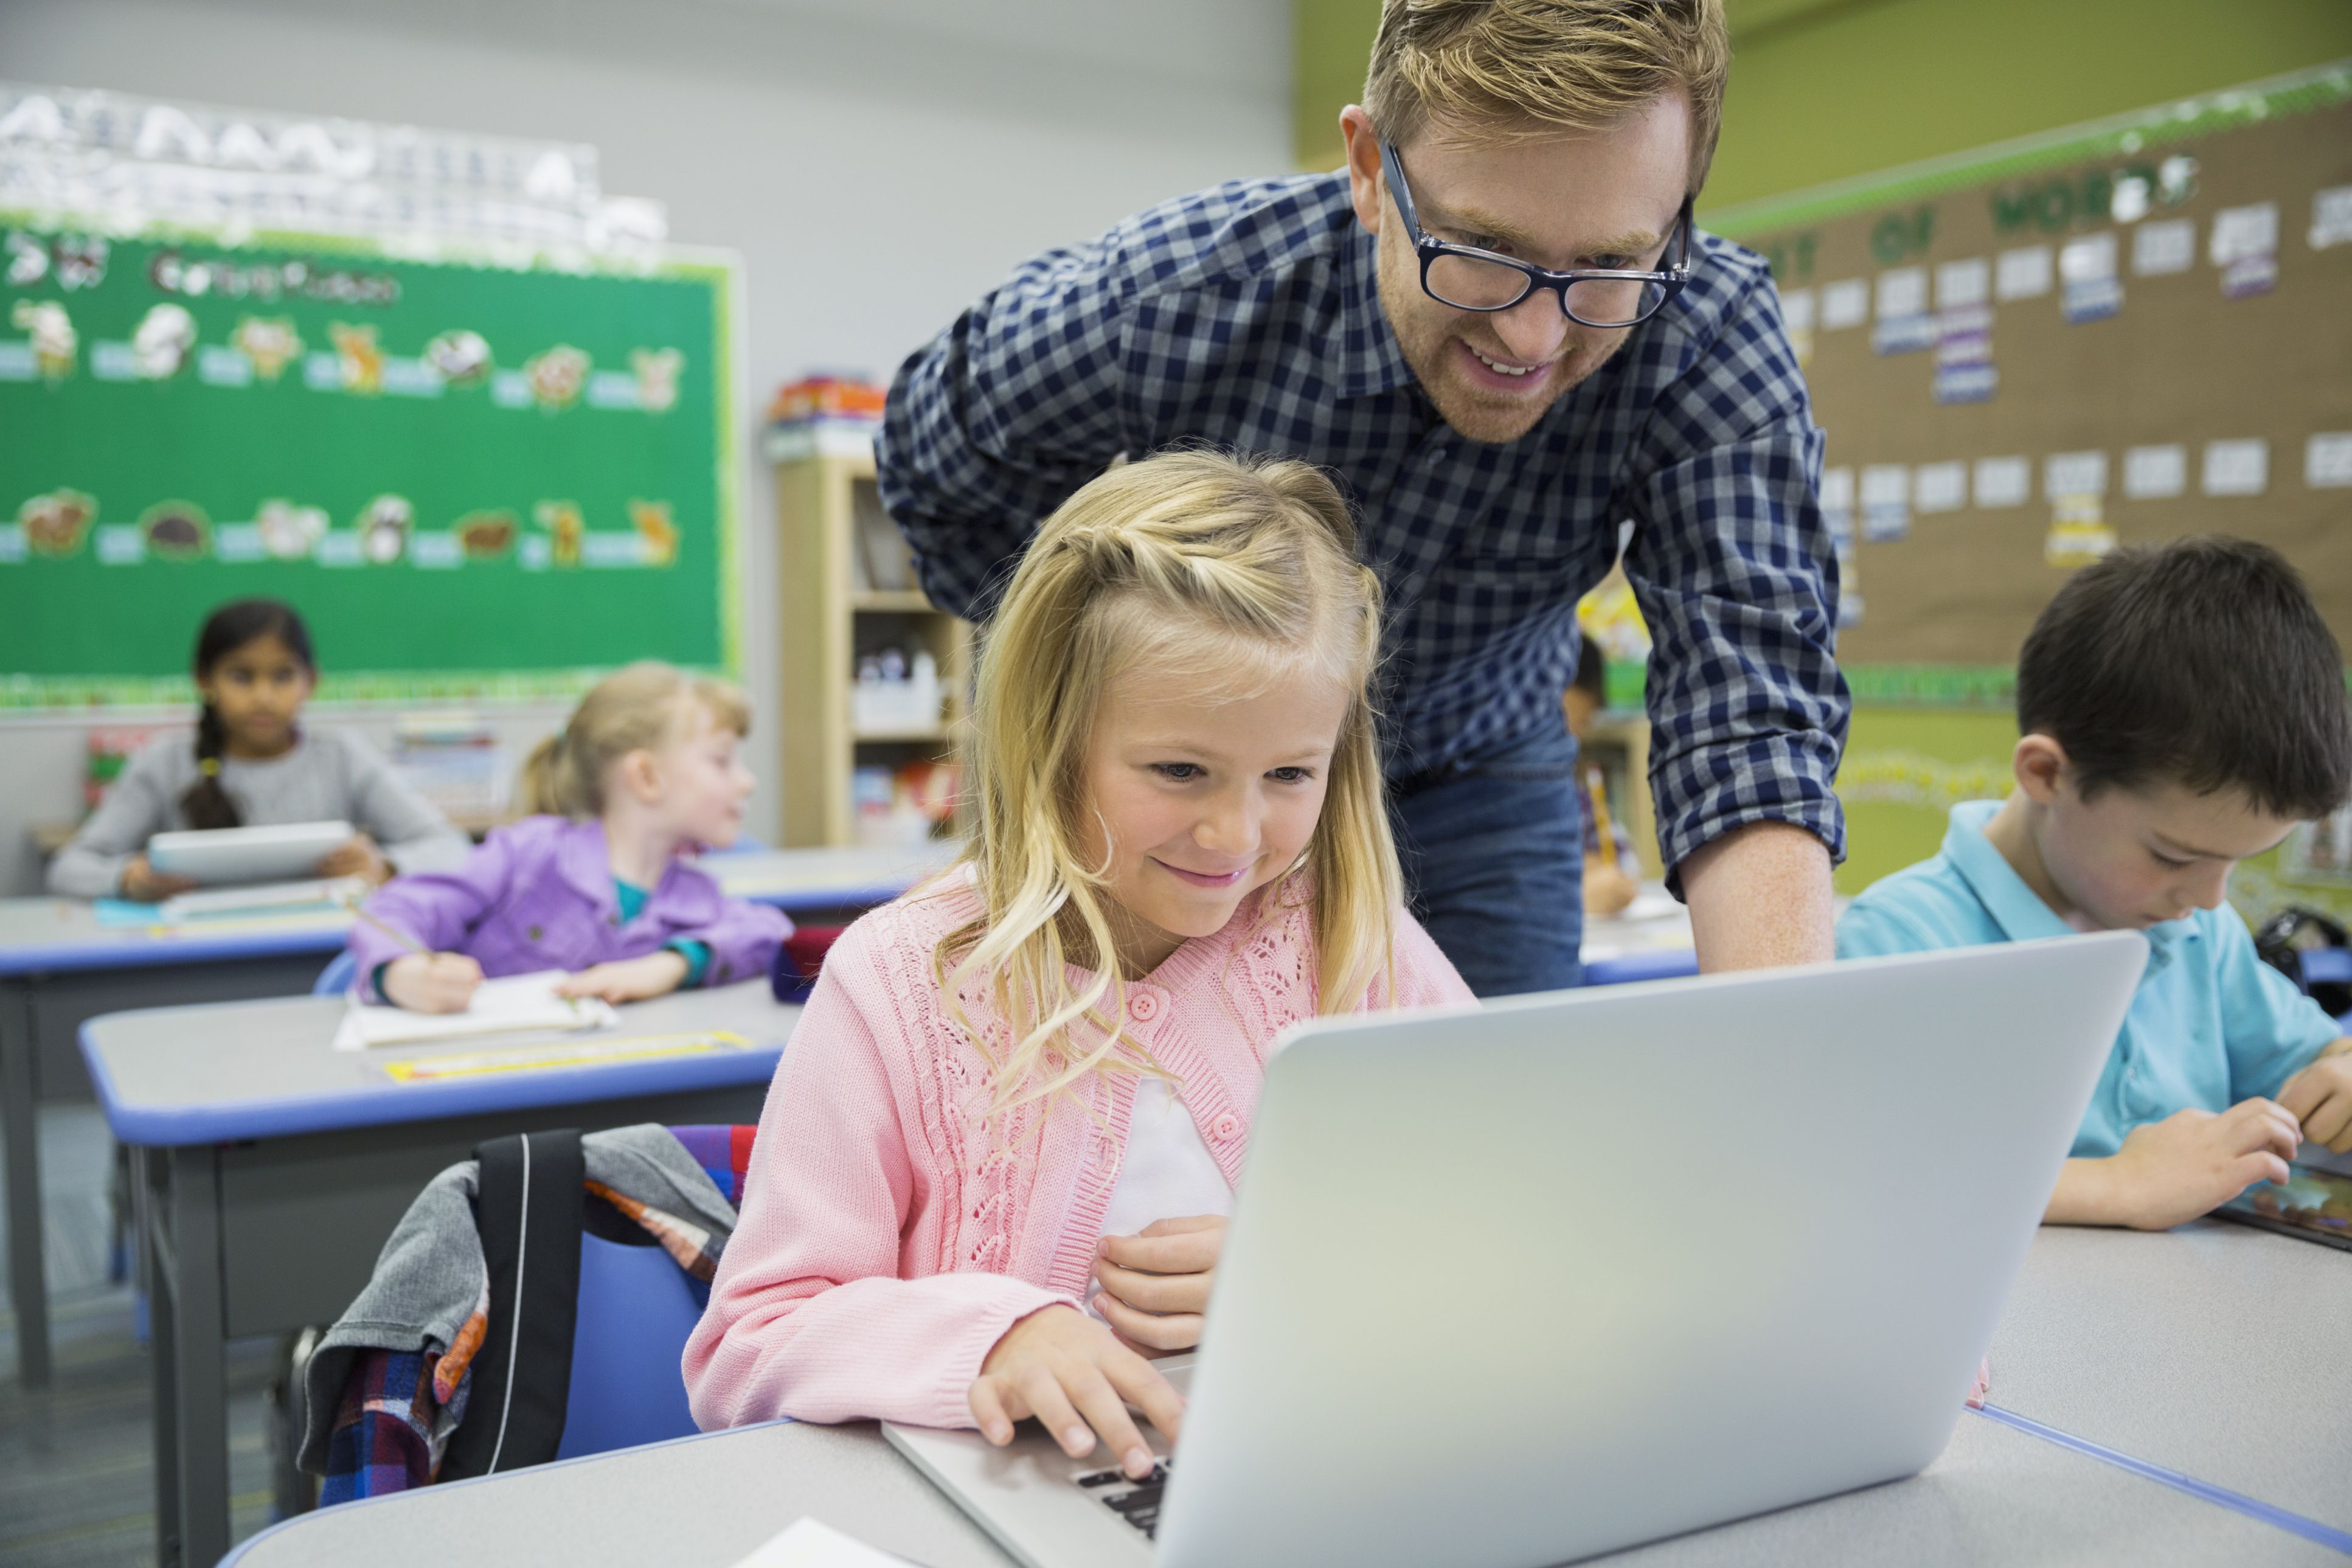 Lessons Plans for Teaching Computer Skills and Microsoft Office